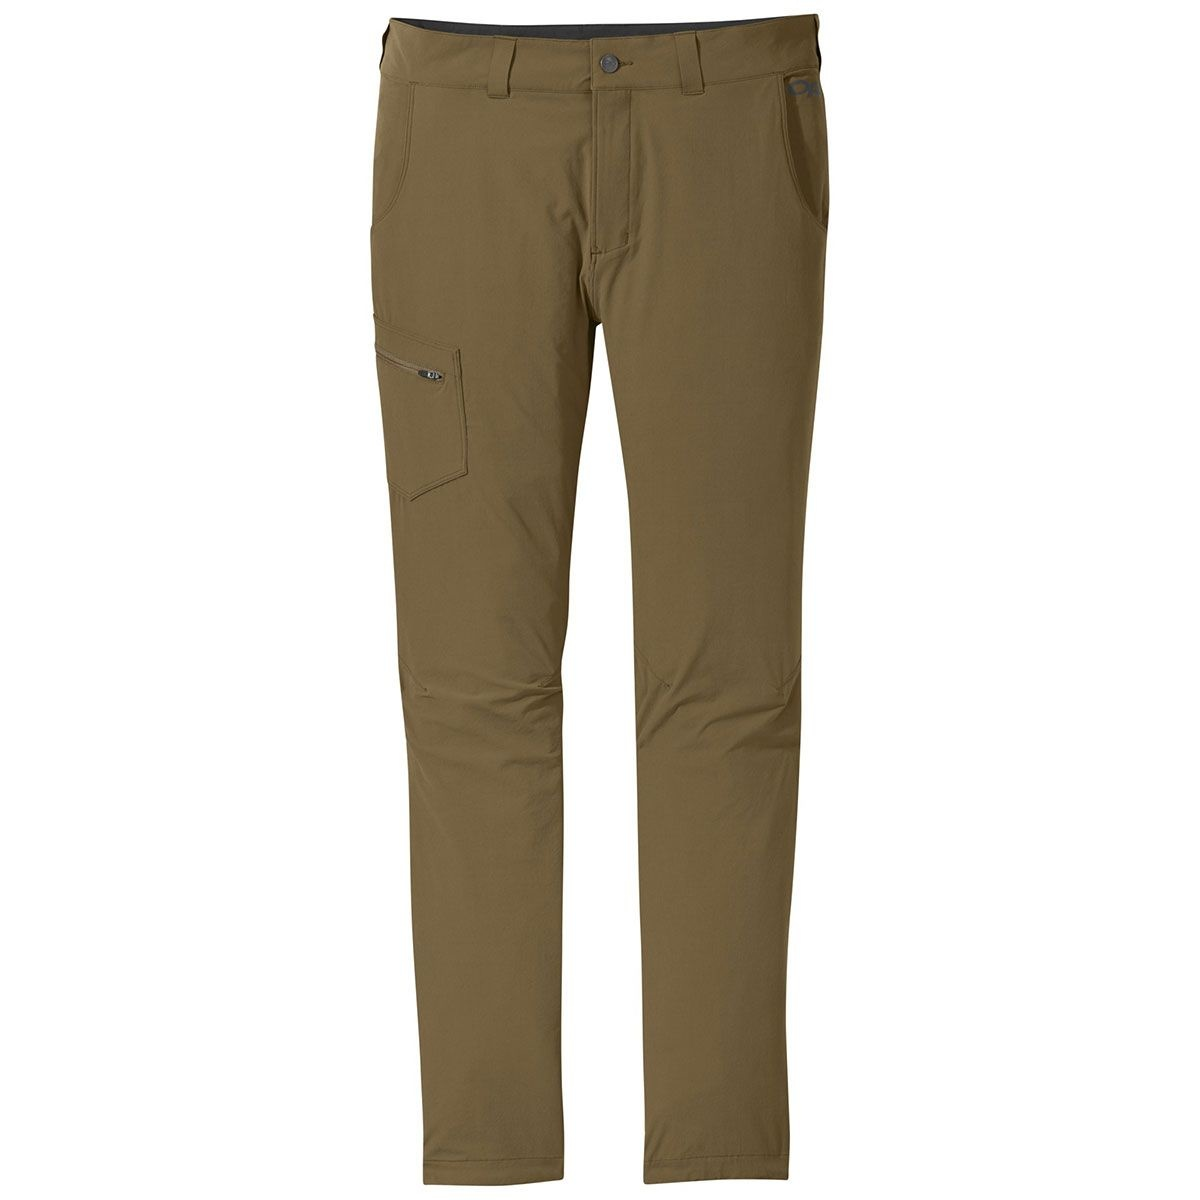 Outdoor Research Men's Ferrosi Pant